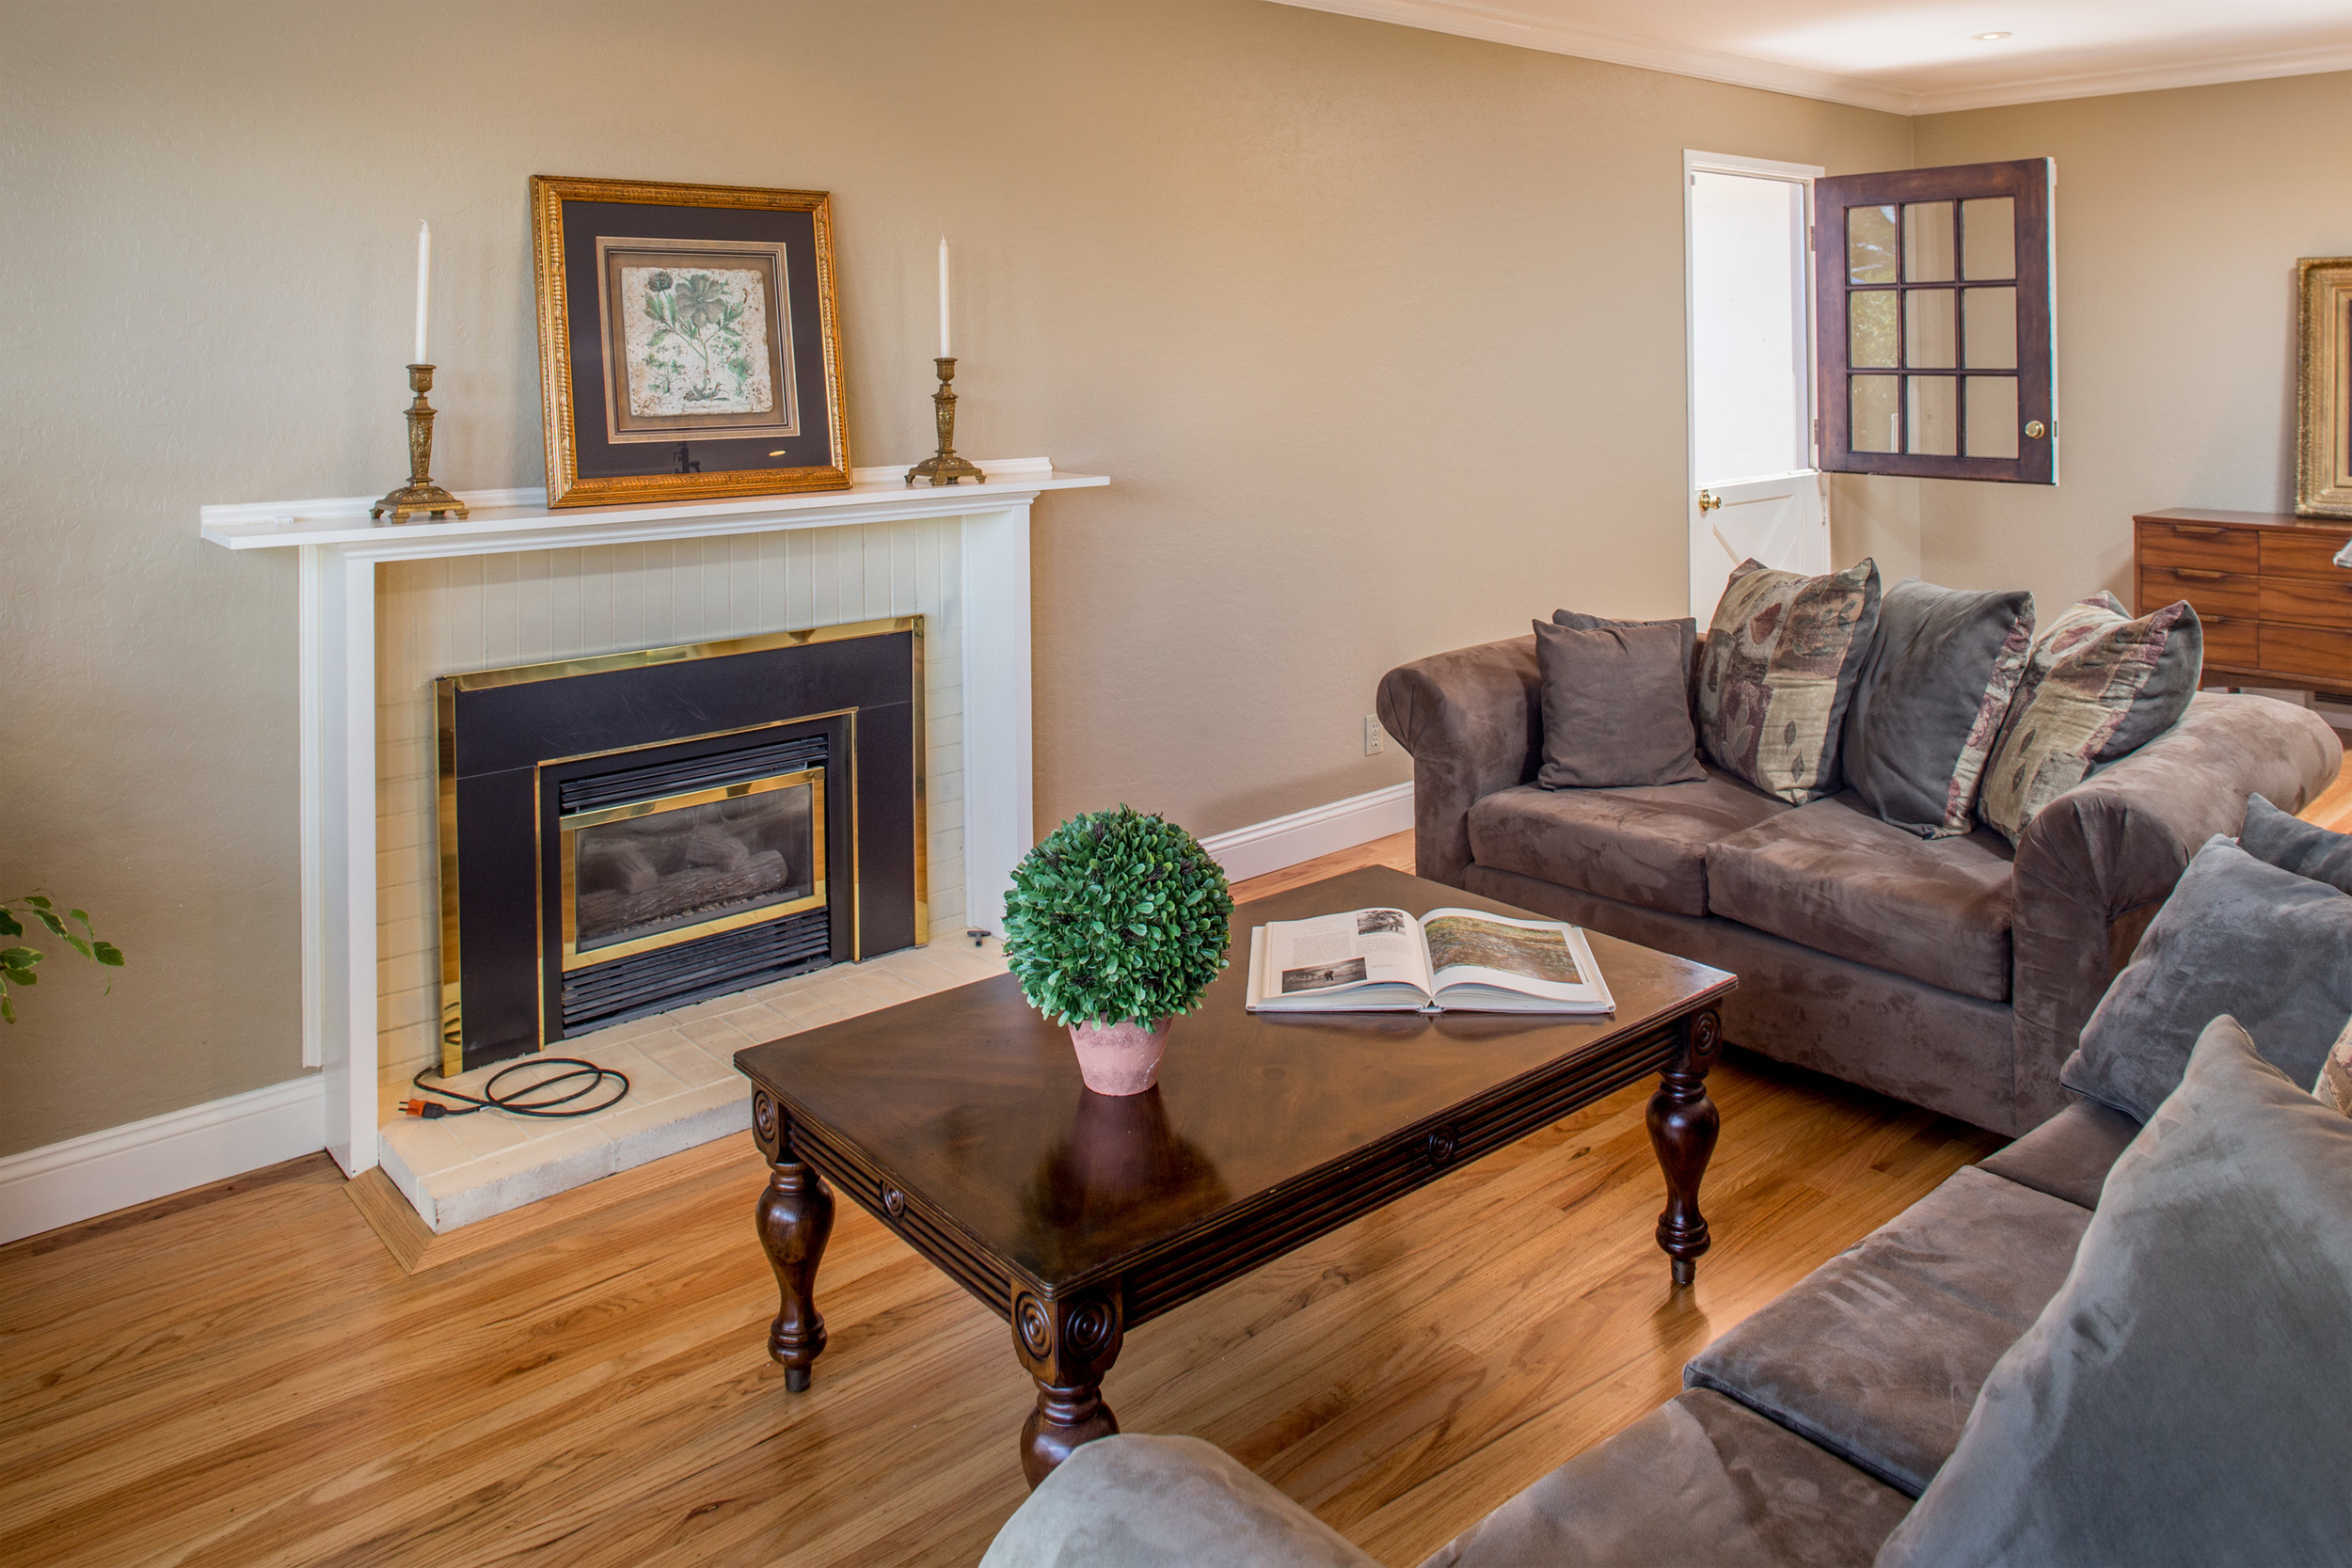 6-Fireplace with gas insert.jpg